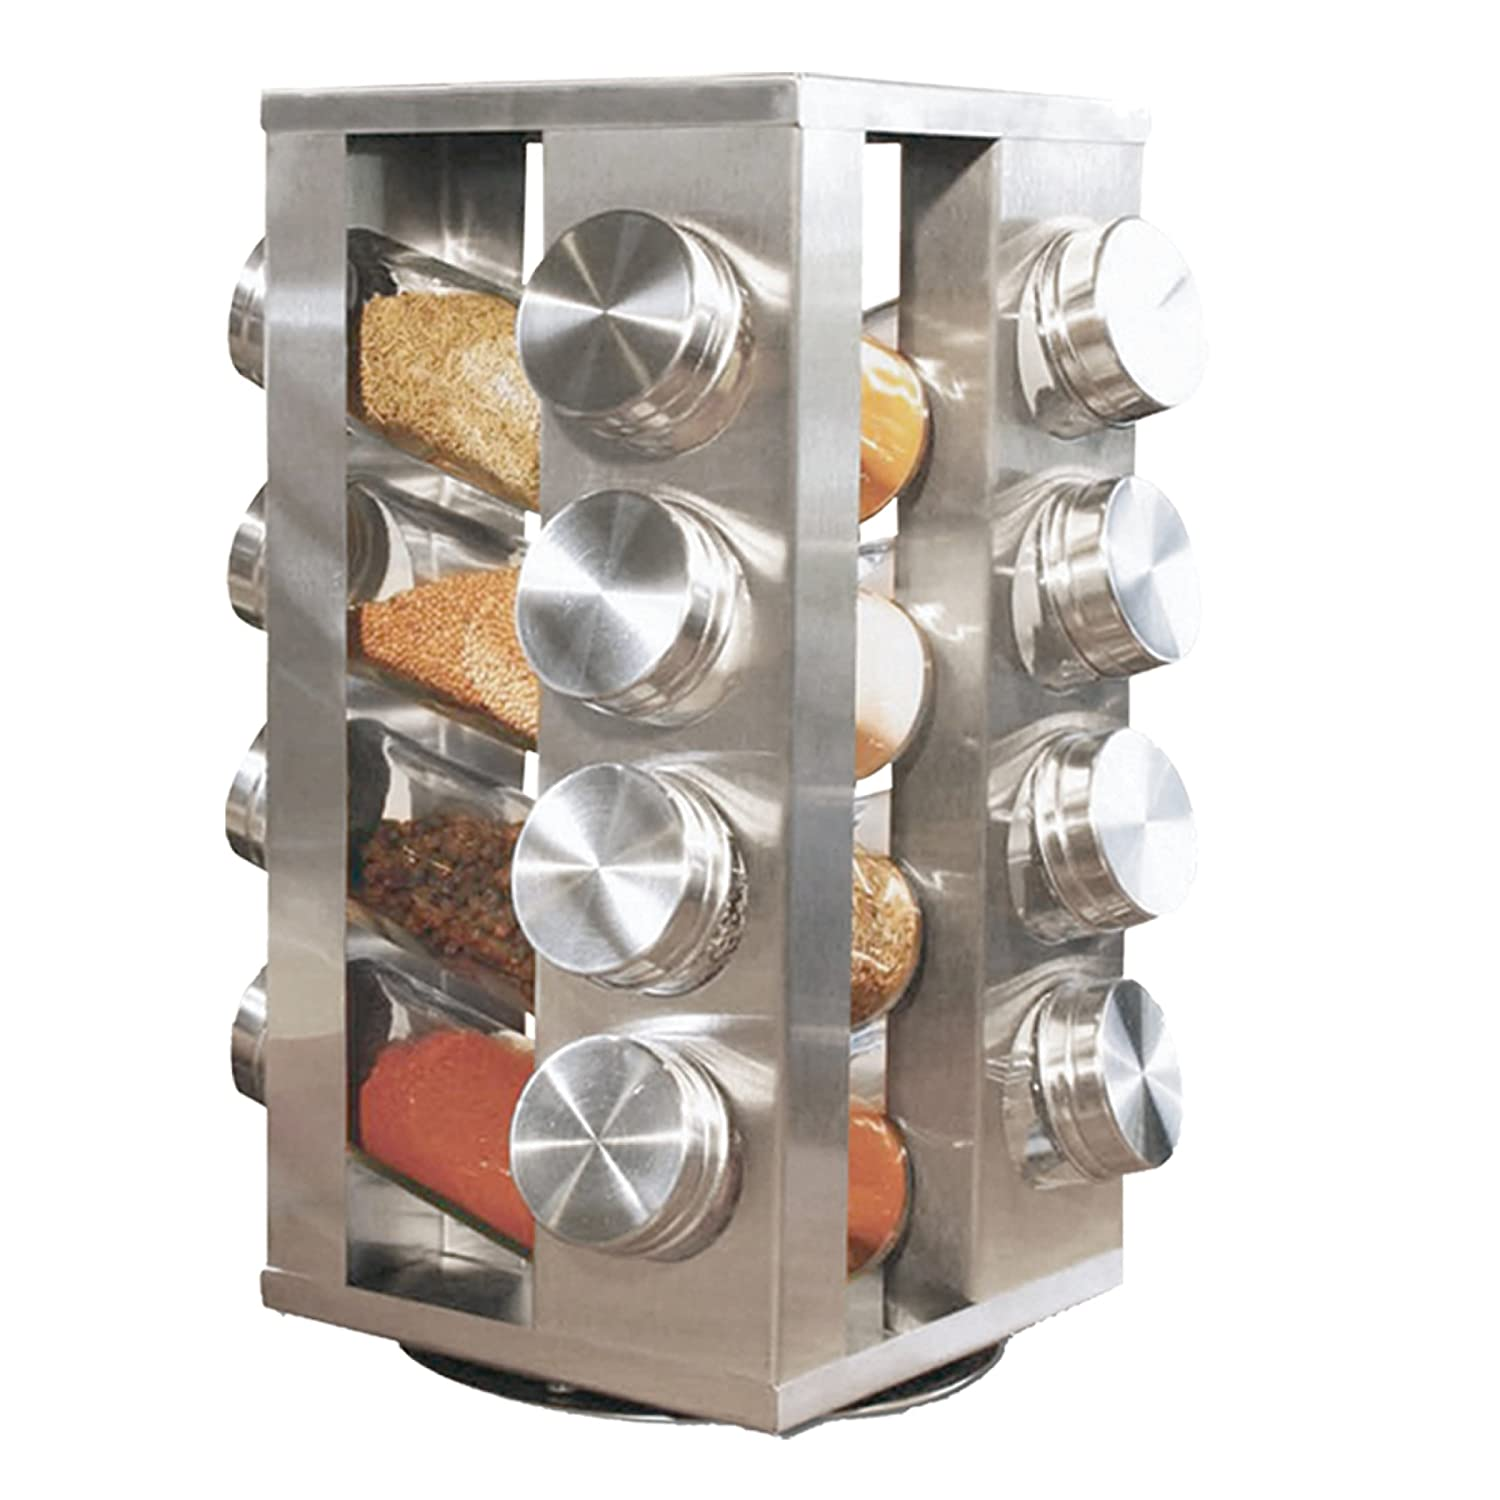 Spice rack with 16 jars stainless steel revolving stainless steel amazon co uk kitchen home